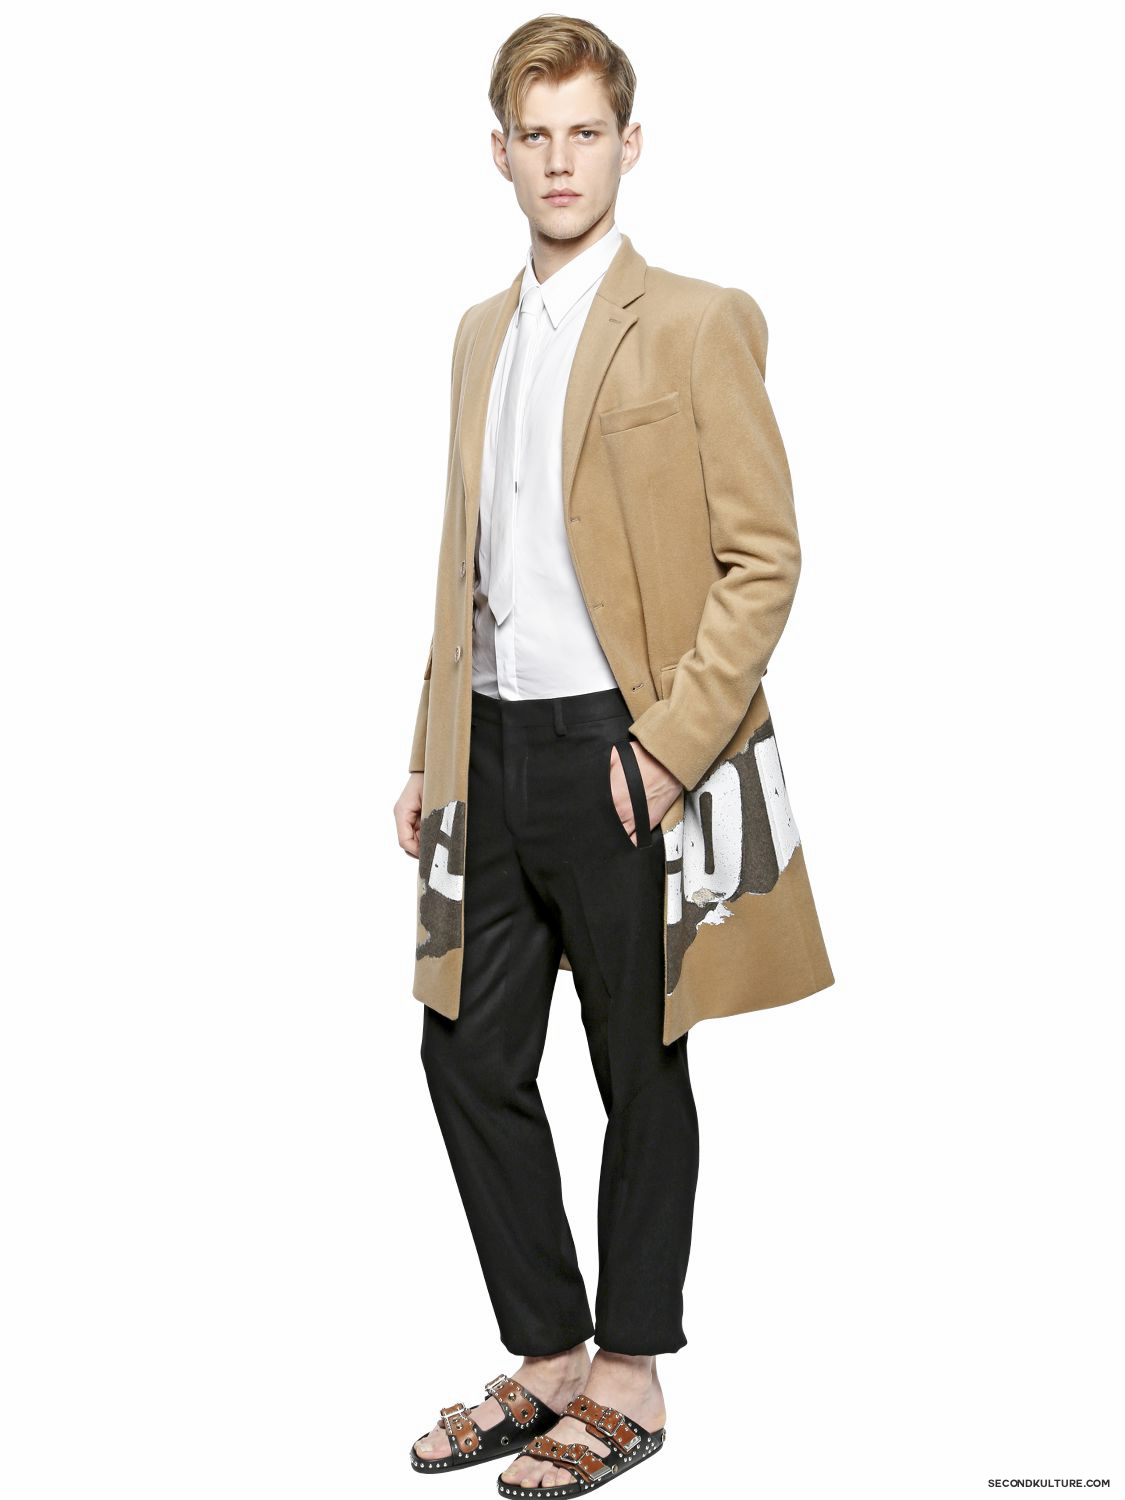 Givenchy-19cm-Pocket-Loop-Wool-Flannel-Trousers-Fall-Winter-2015-2